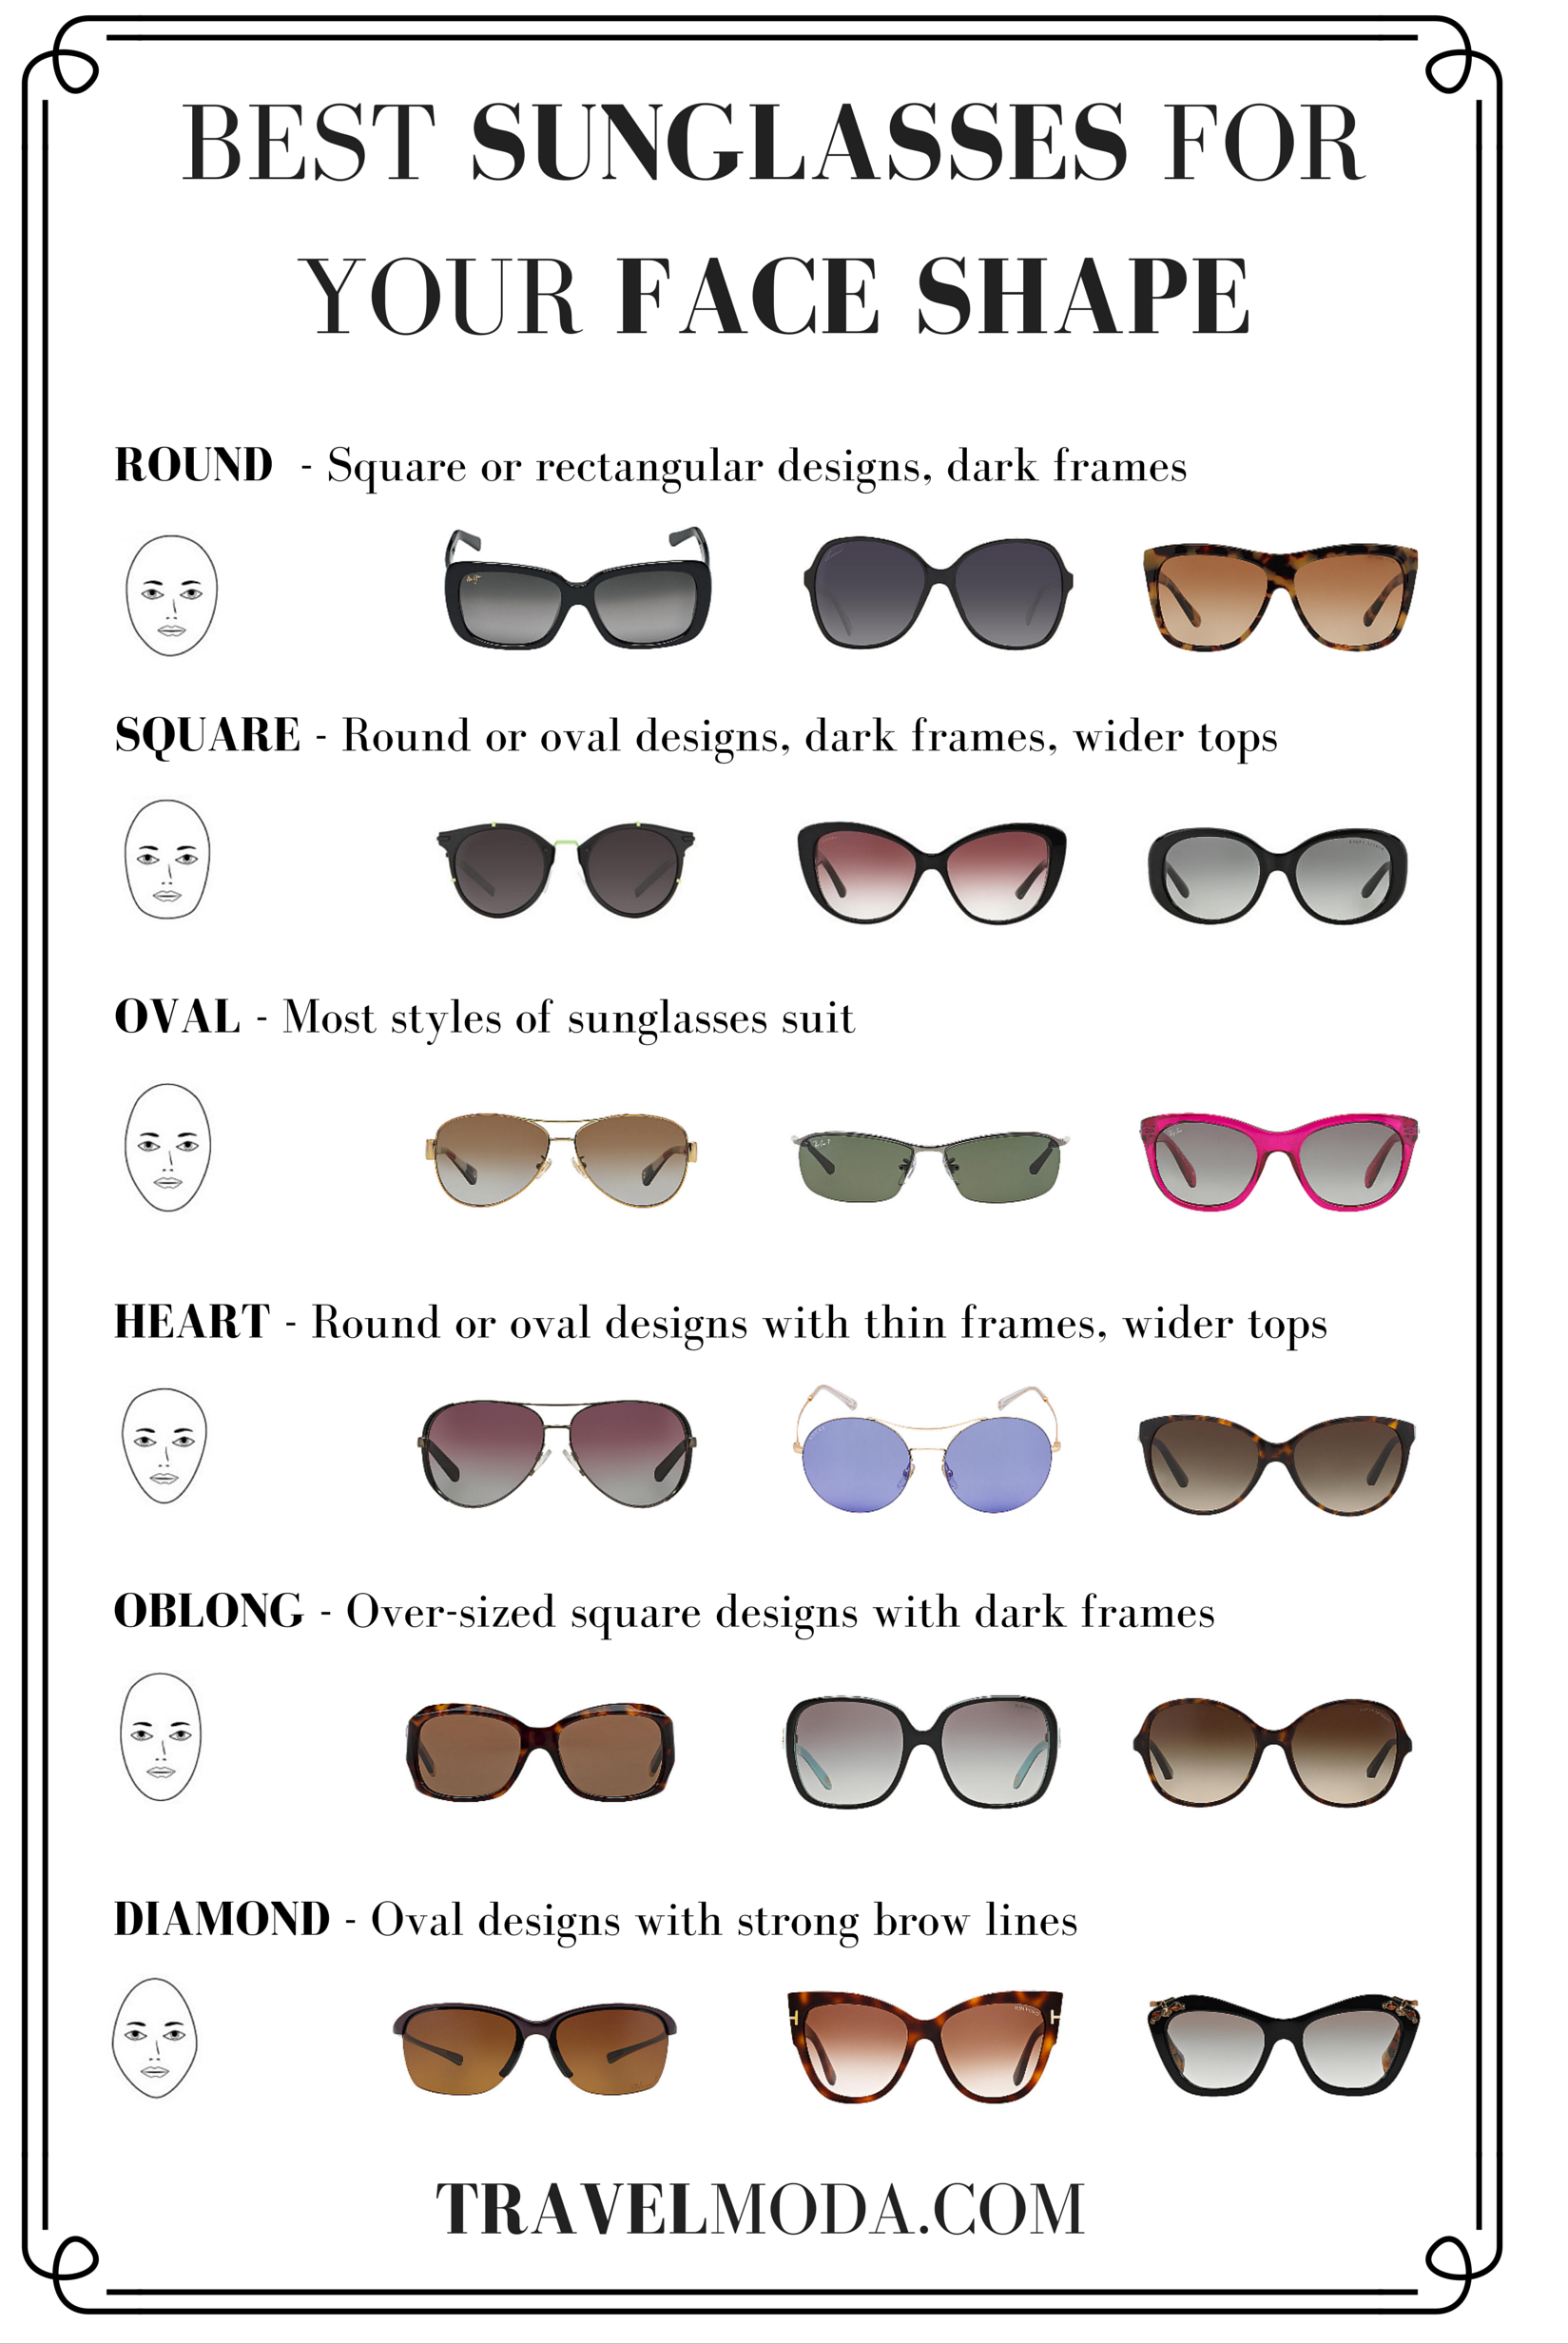 Best Sunglasses For Your Face Shape Womens Sunglasses Face Shape Glasses For Your Face Shape Sunglasses Guide